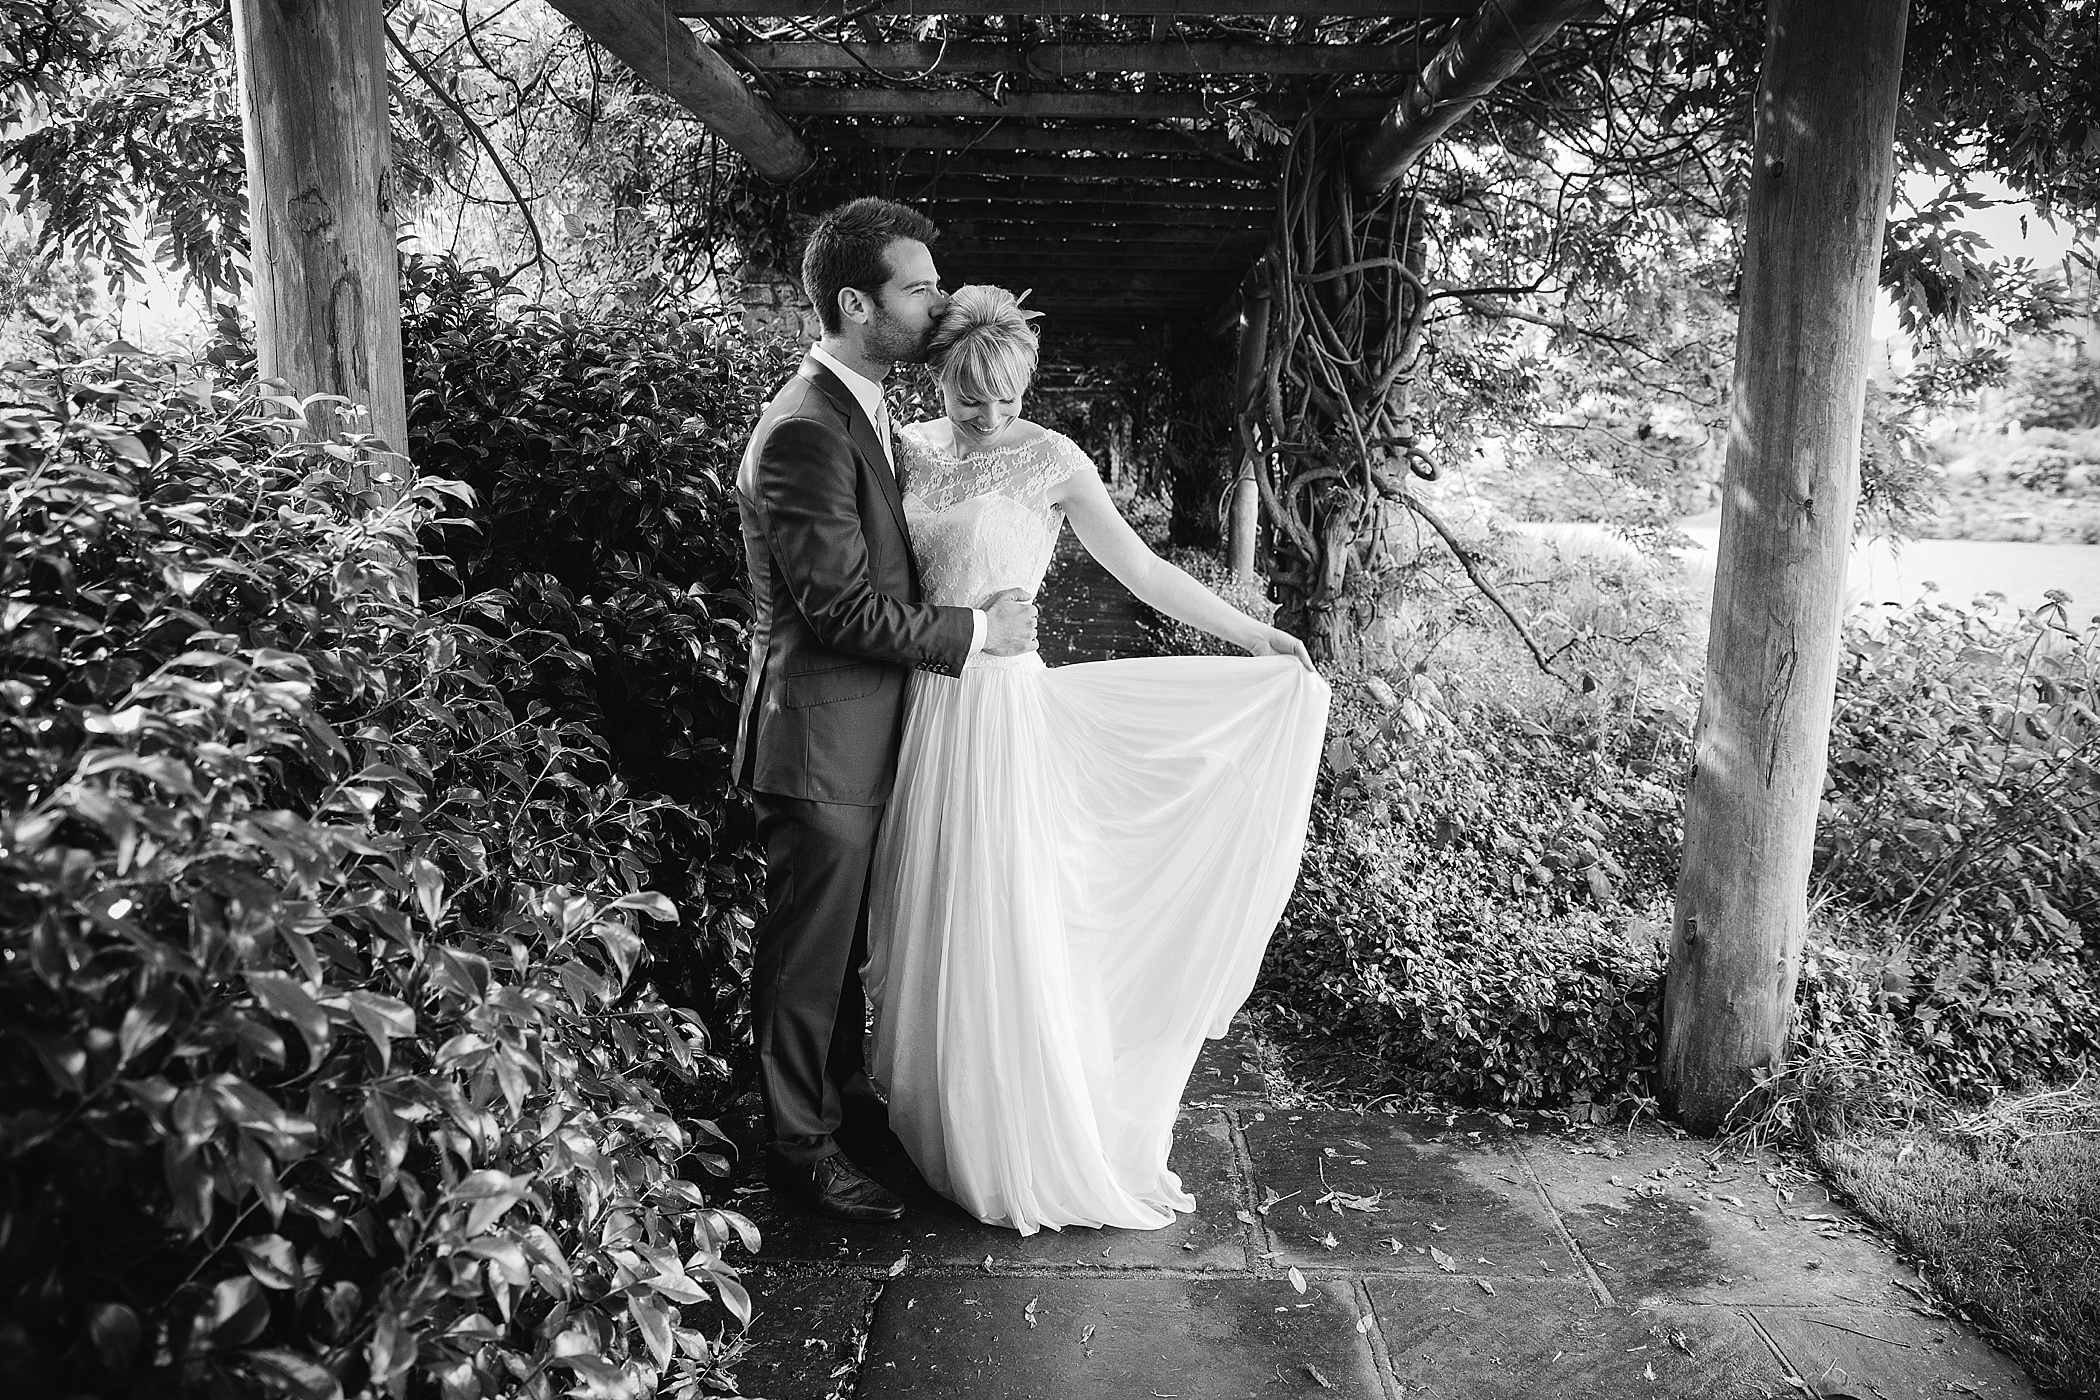 Nymans Garden Wedding